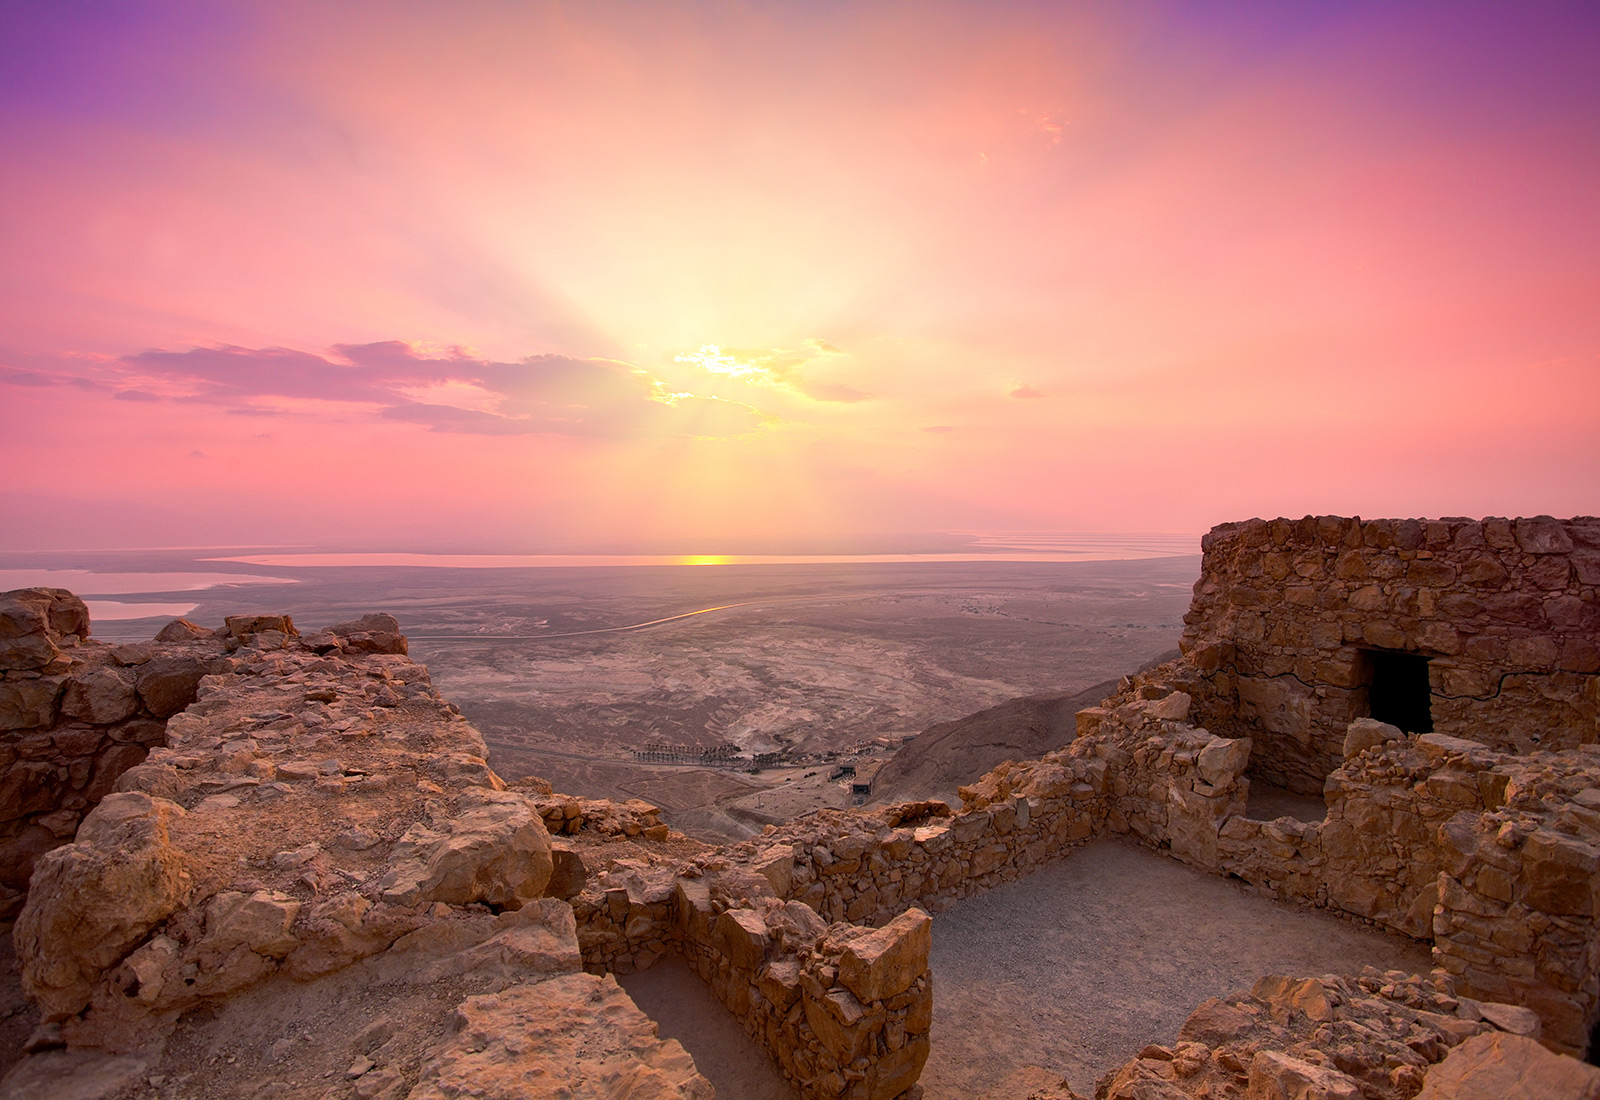 Mystical Sacred Tour of Israel | Sacred Mystical Journeys